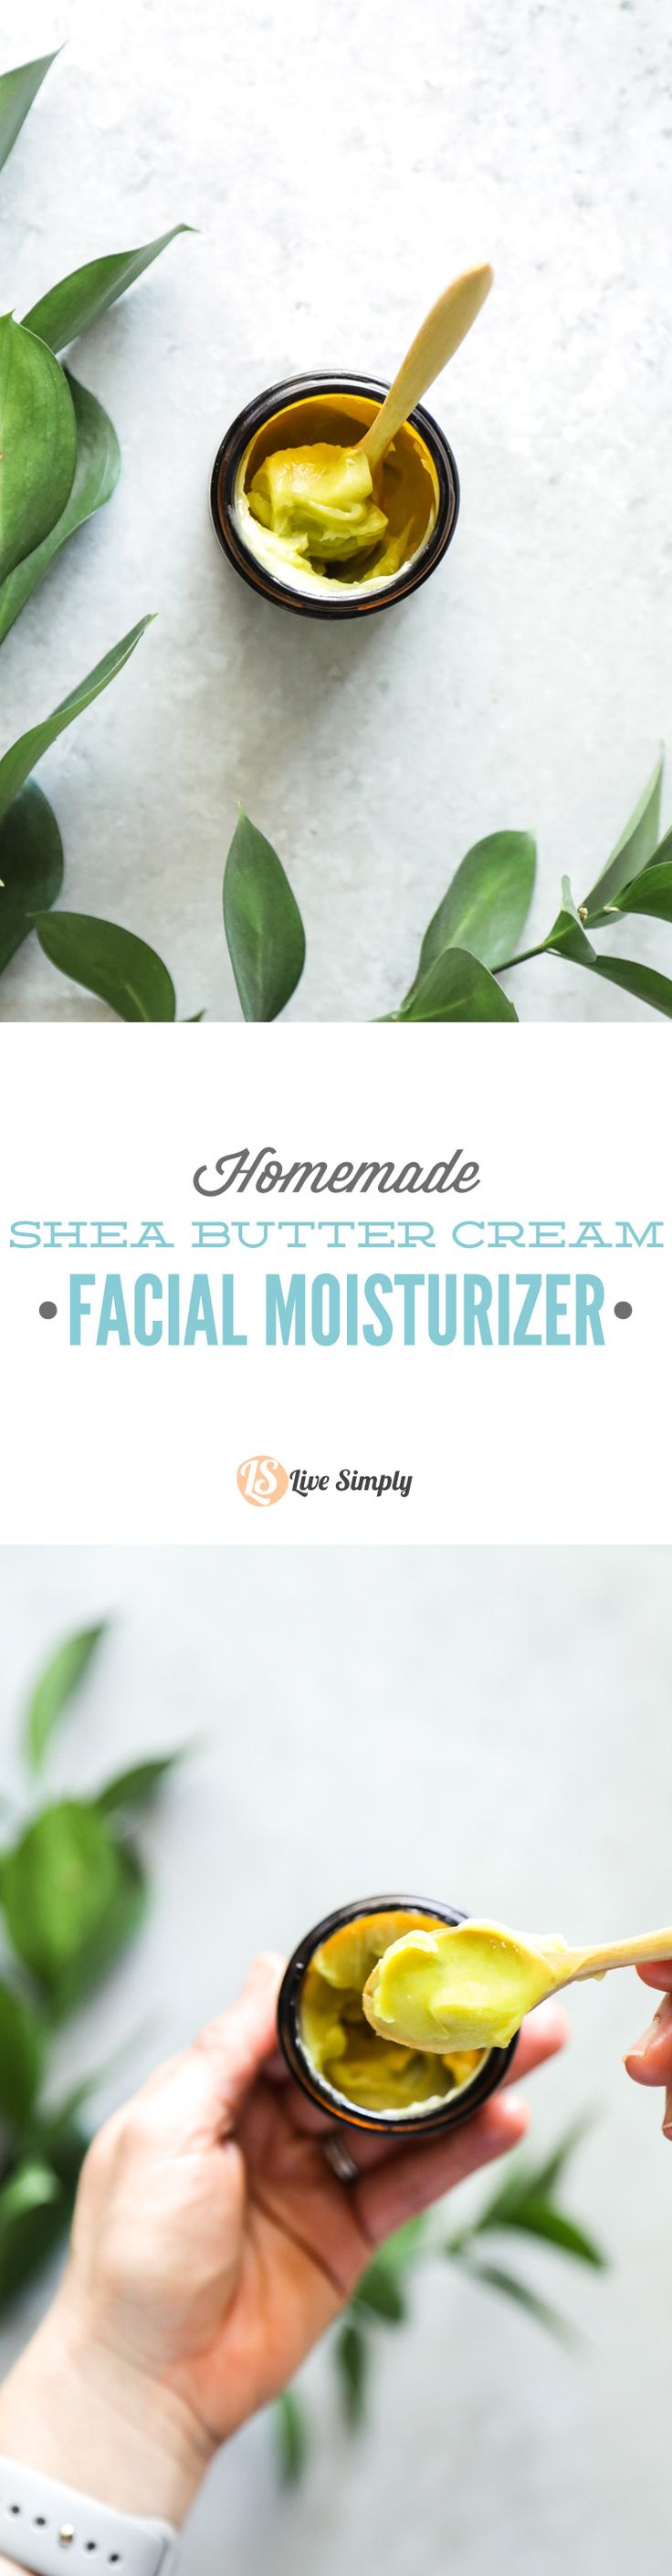 A simple two-ingredient shea butter cream facial moisturizer. Use this as a day or night facial cream after cleansing the skin.